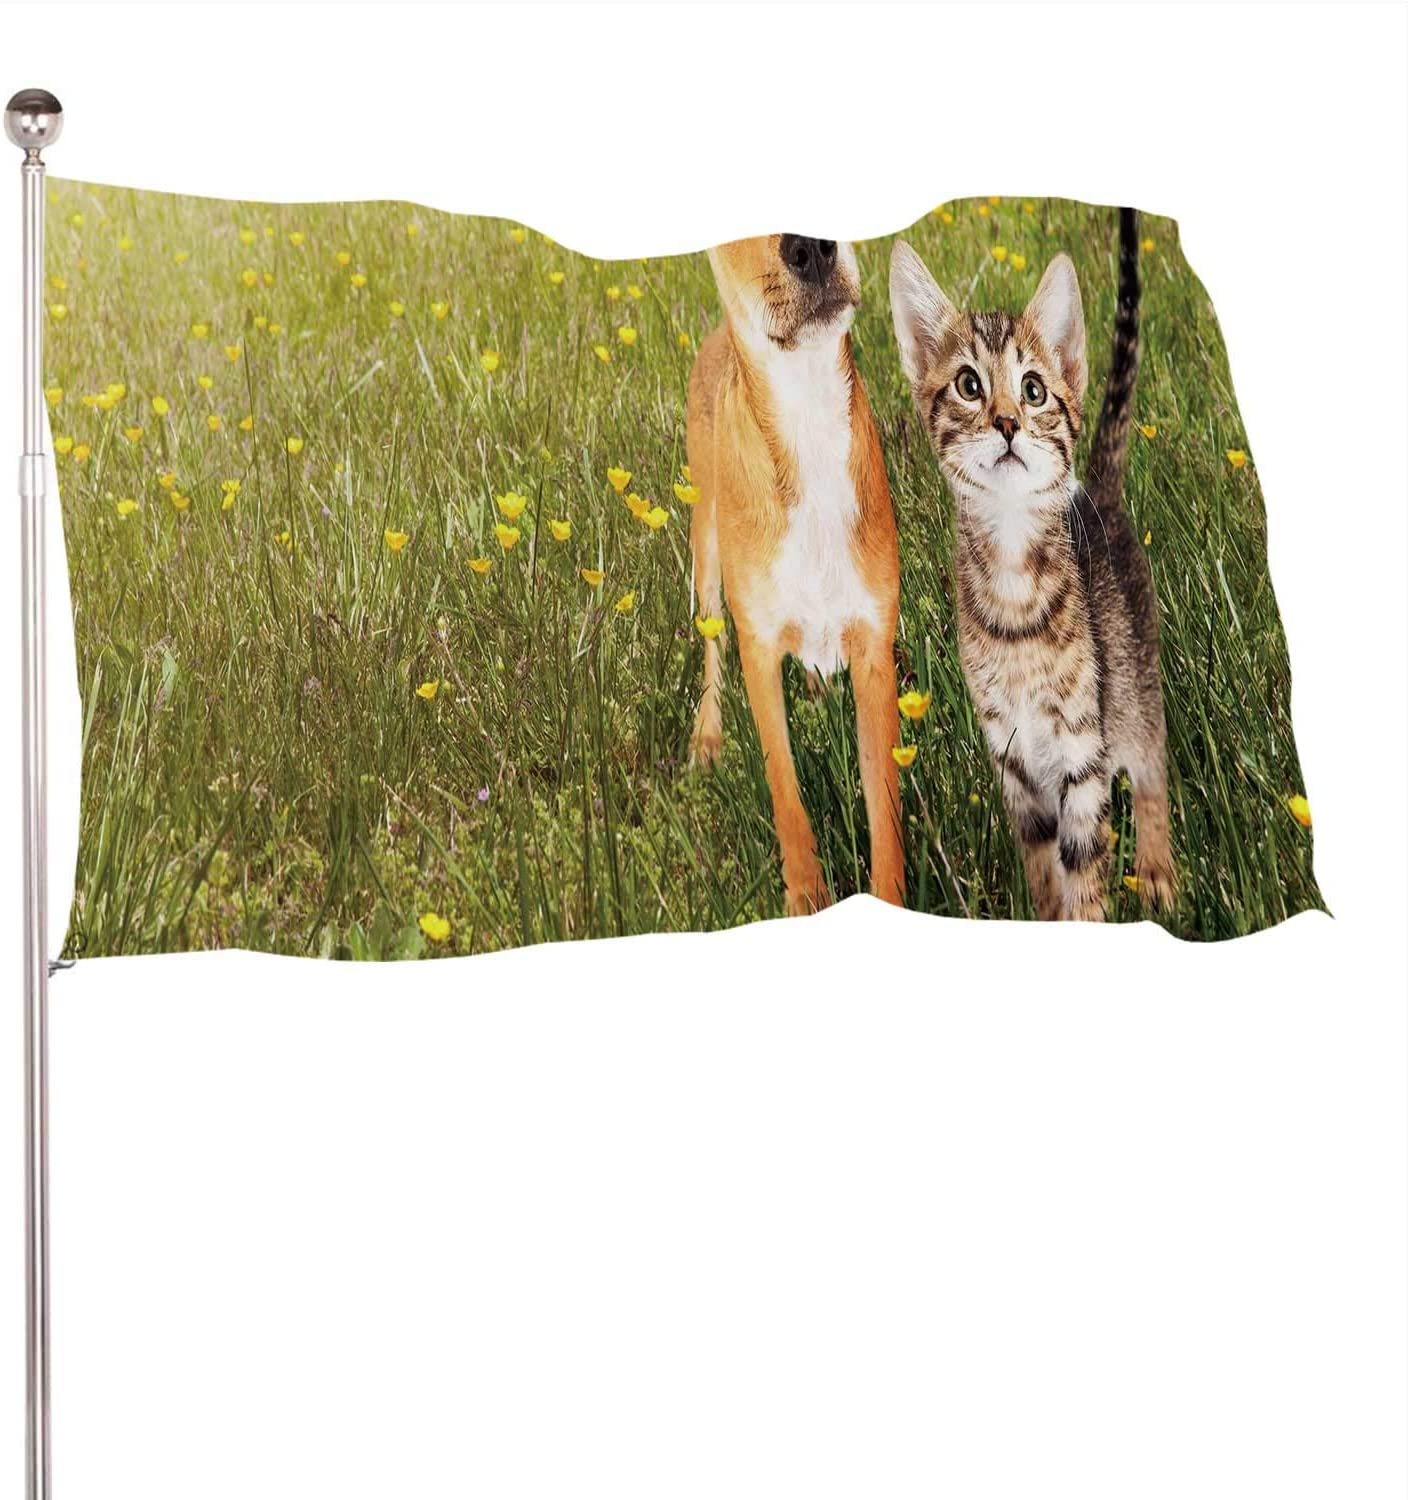 Dxichy Cute Kitten and Puppy Together in a Field of Green Grass Yellow Wild Flowers with Copy Space,Banner Flags with Grommets for Decor Vivid Color and UV Fade Resistant 3x5 Ft